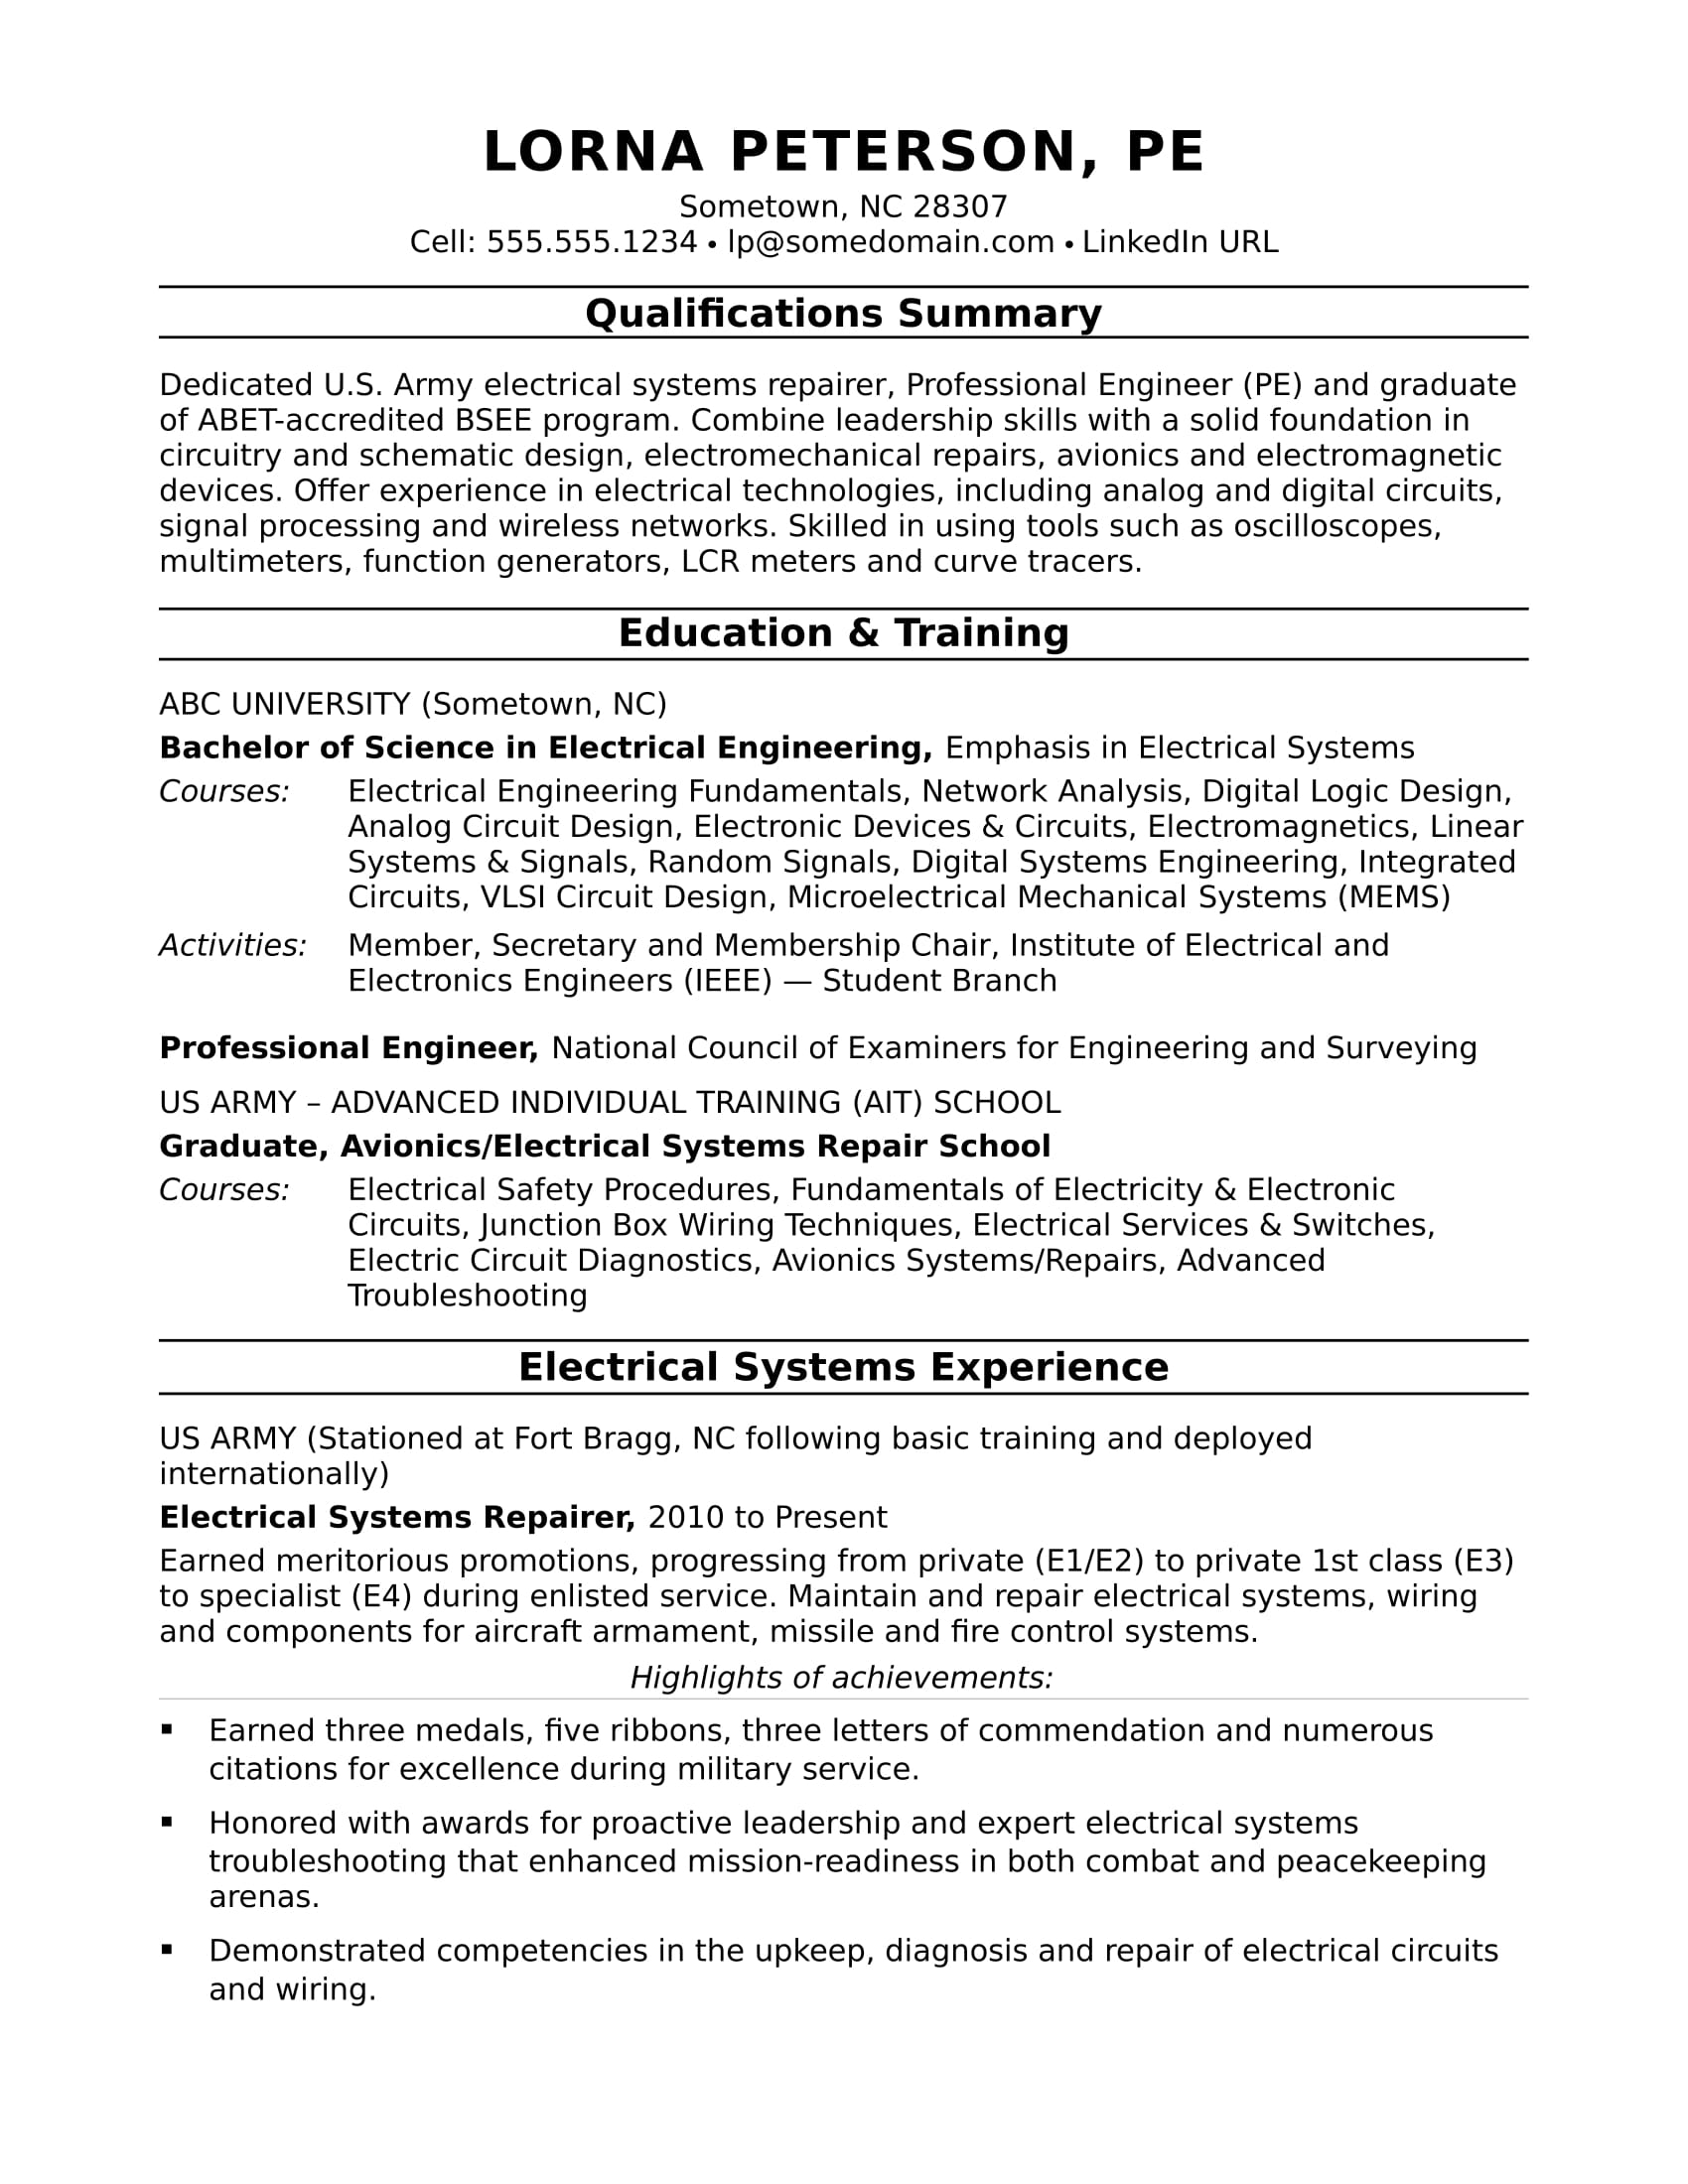 Sample Resume for a Midlevel Electrical Engineer | Monster.com